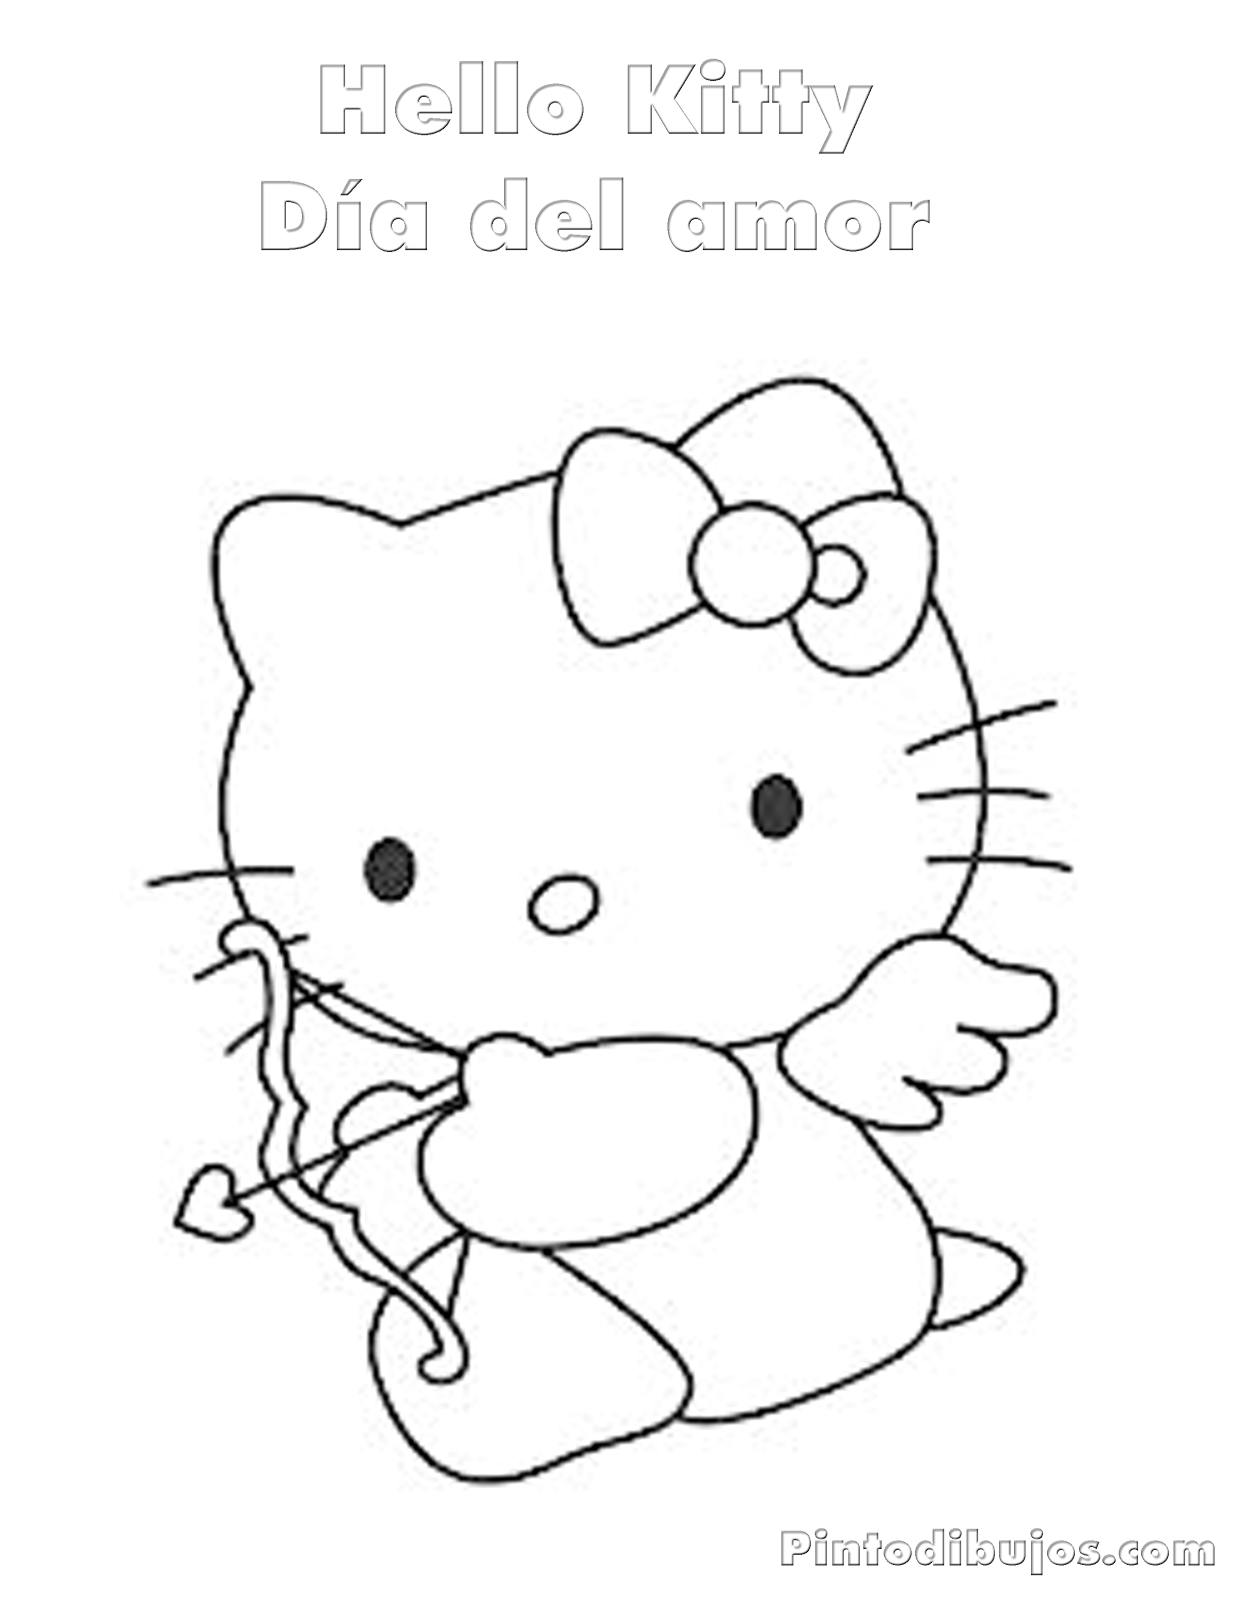 hello kitty valentines day coloring pages free printable hello kitty valentine coloring pages kitty day hello pages valentines coloring